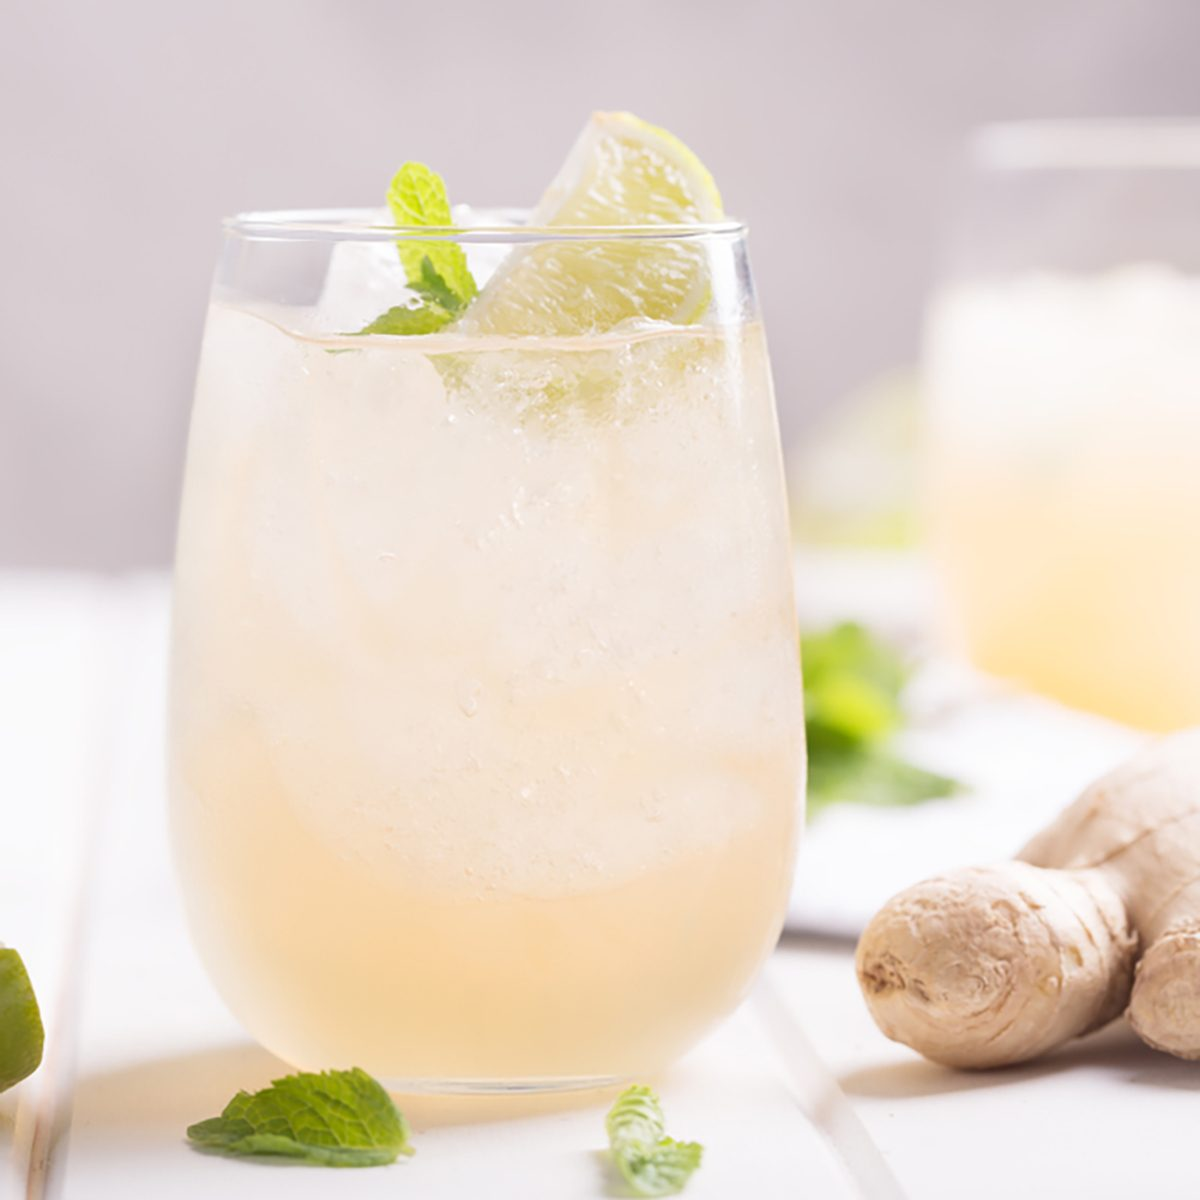 Fresh cocktail prepared with ginger beer, lime and ice. Beverage on the table. Image contains copy space for text; Shutterstock ID 771991972; Job (TFH, TOH, RD, BNB, CWM, CM): TOH